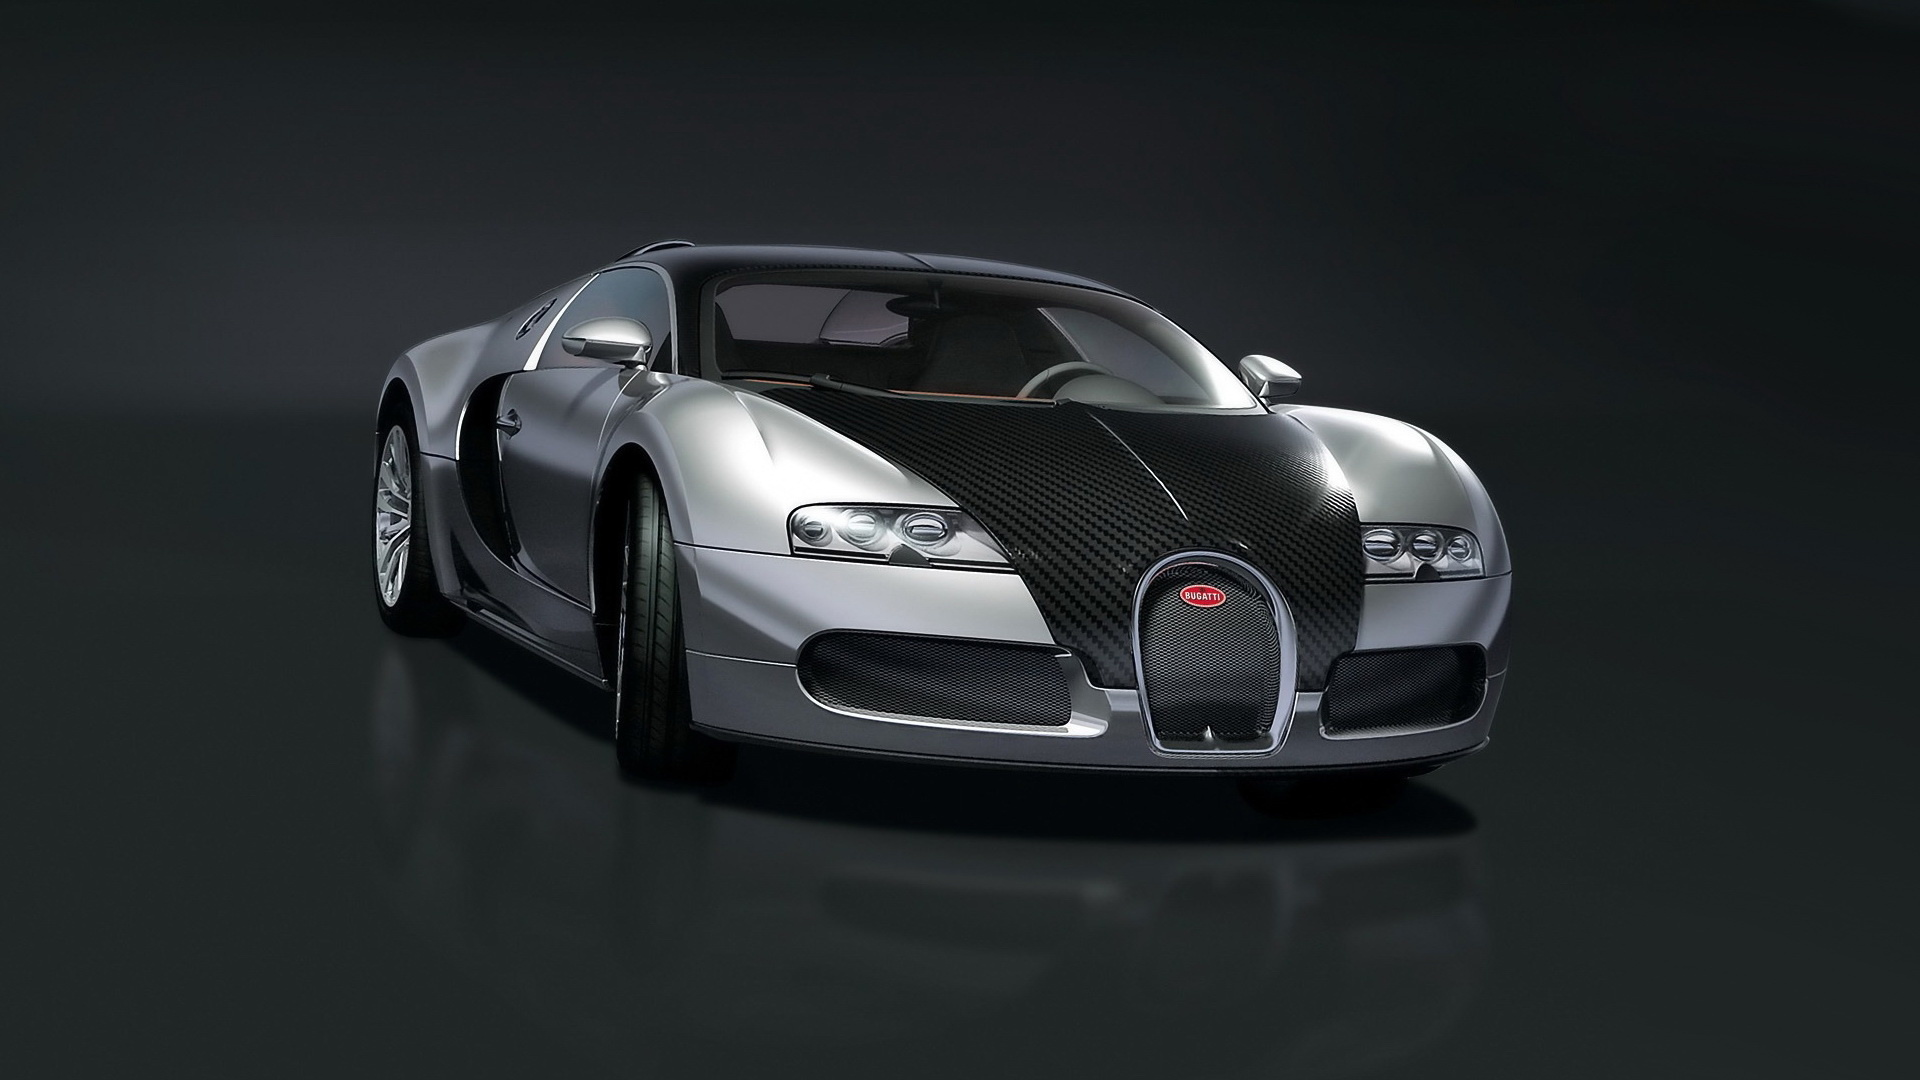 Download Bugatti Veyron Wallpaper pictures in high definition or 1920x1080